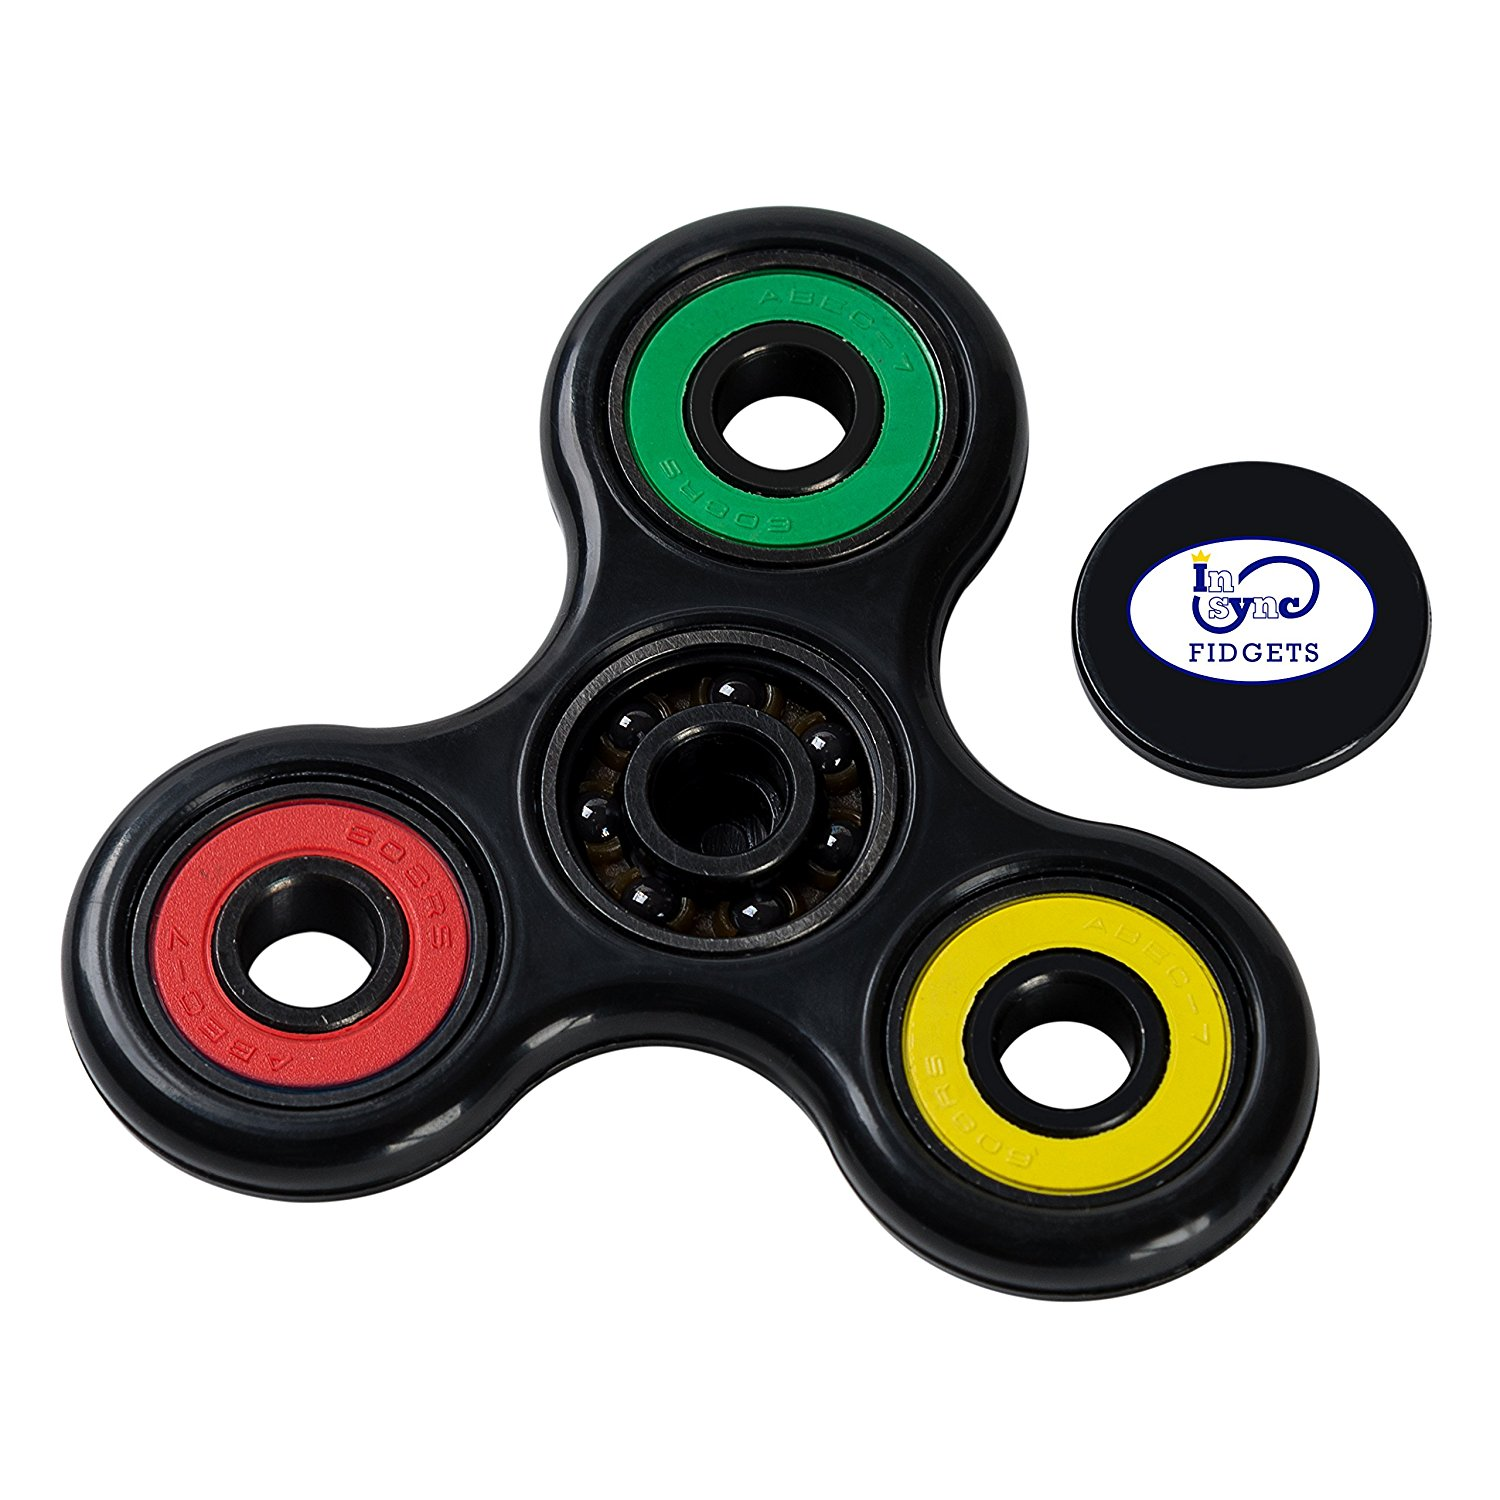 In Sync Fidgets Spinner Fidget Toy EDC High Speed Si3N4 Hybrid Ceramic Ball Bearing ABS non Crack Frame 1 to 3 Min Spins Anxiety Stress Reliever Focus Toy